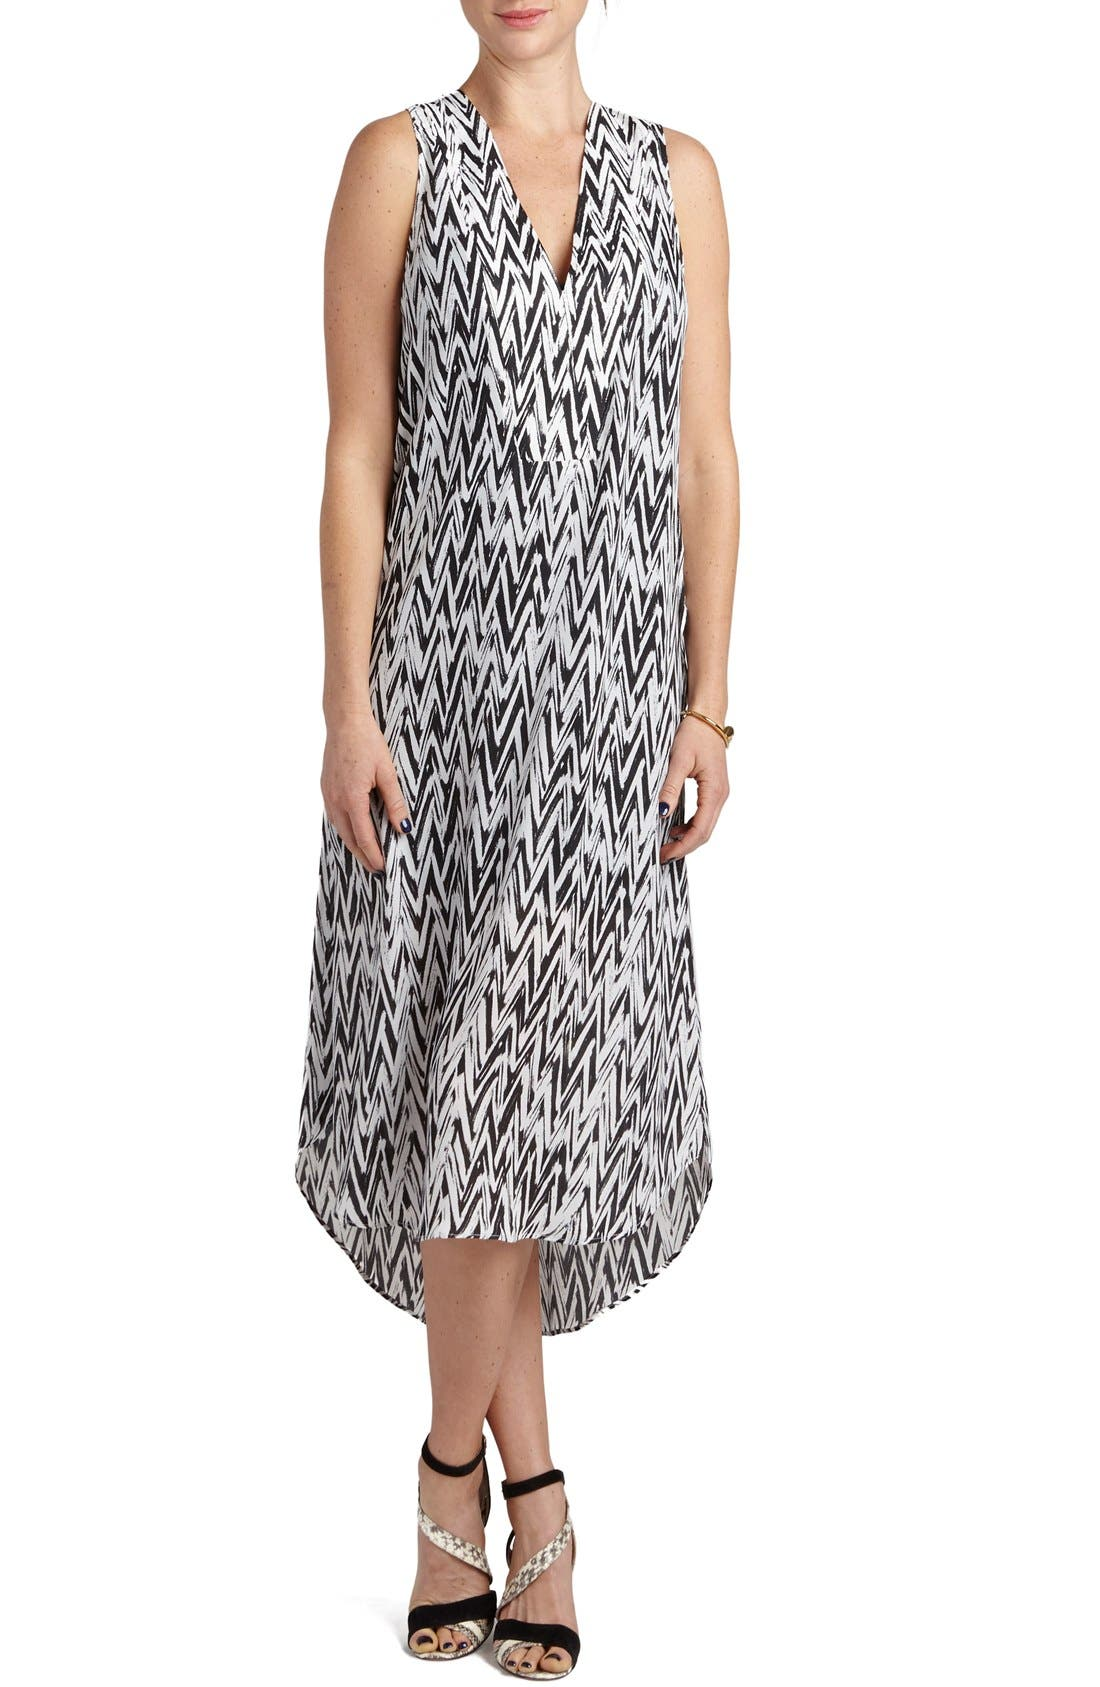 Alternate Image 1 Selected - Loyal Hana 'January' Print Maternity/Nursing High/Low Dress